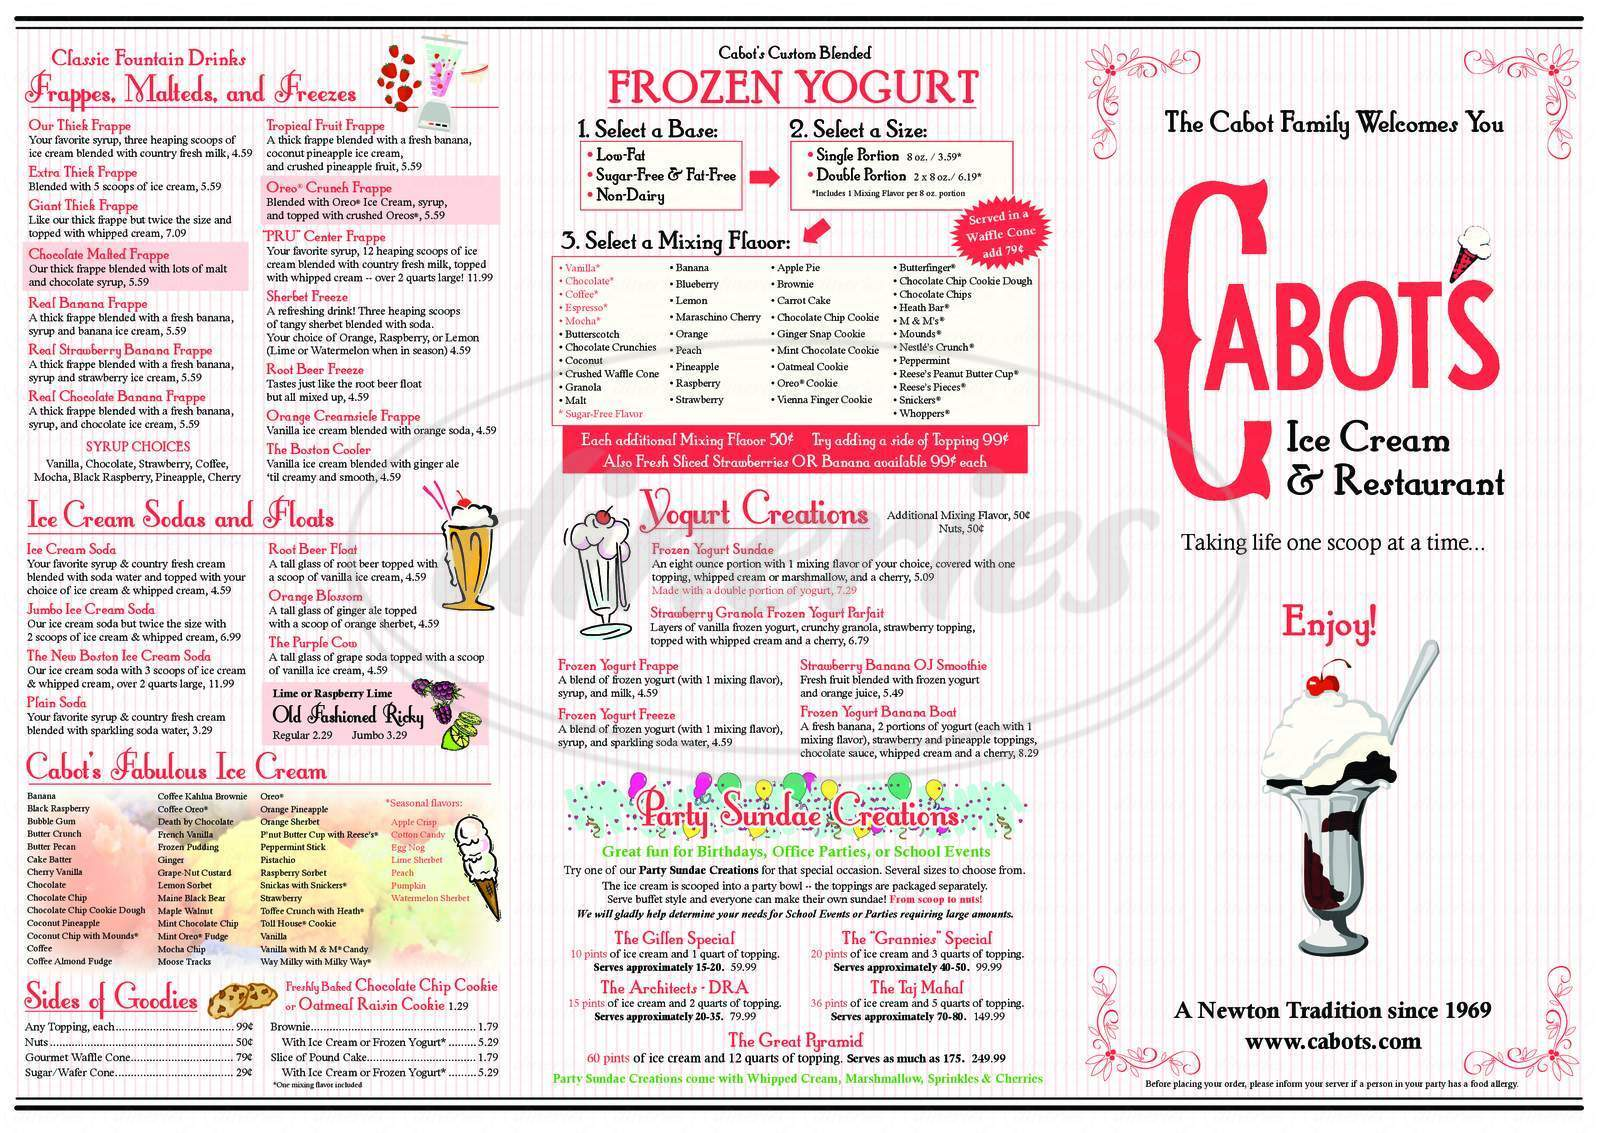 menu for Cabot's Ice Cream & Restaurant